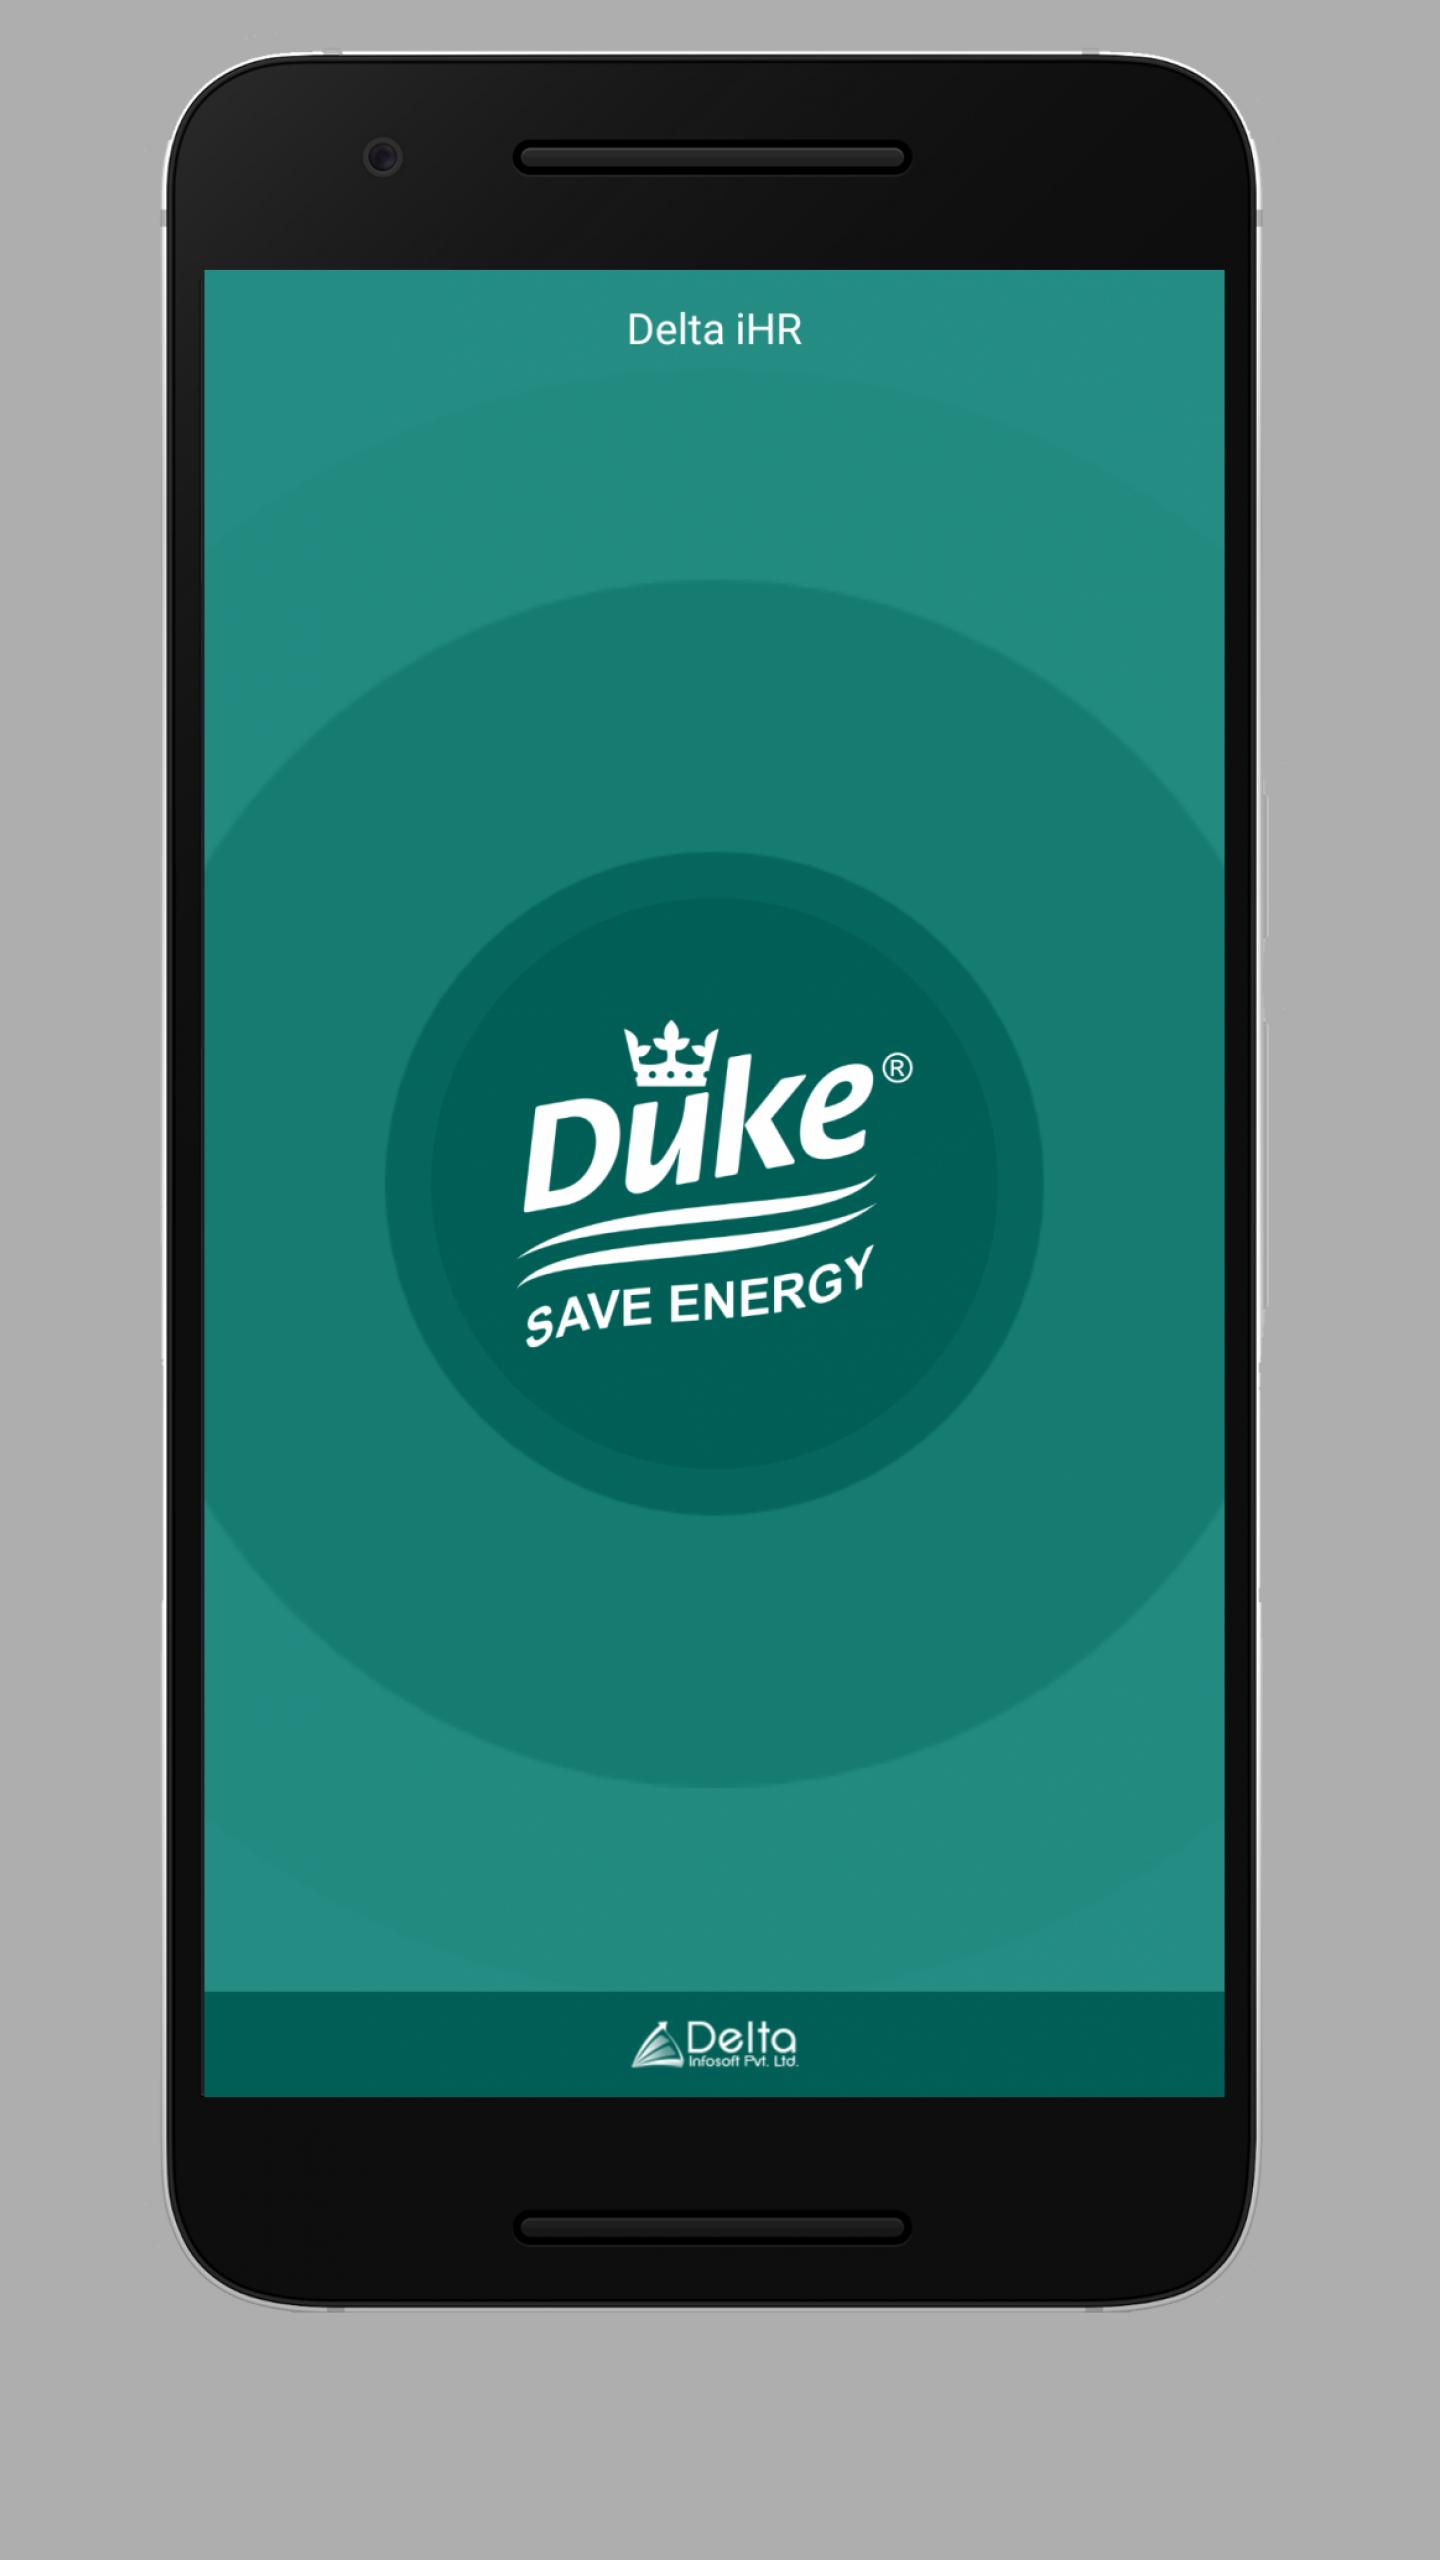 Duke iHR for Android - APK Download